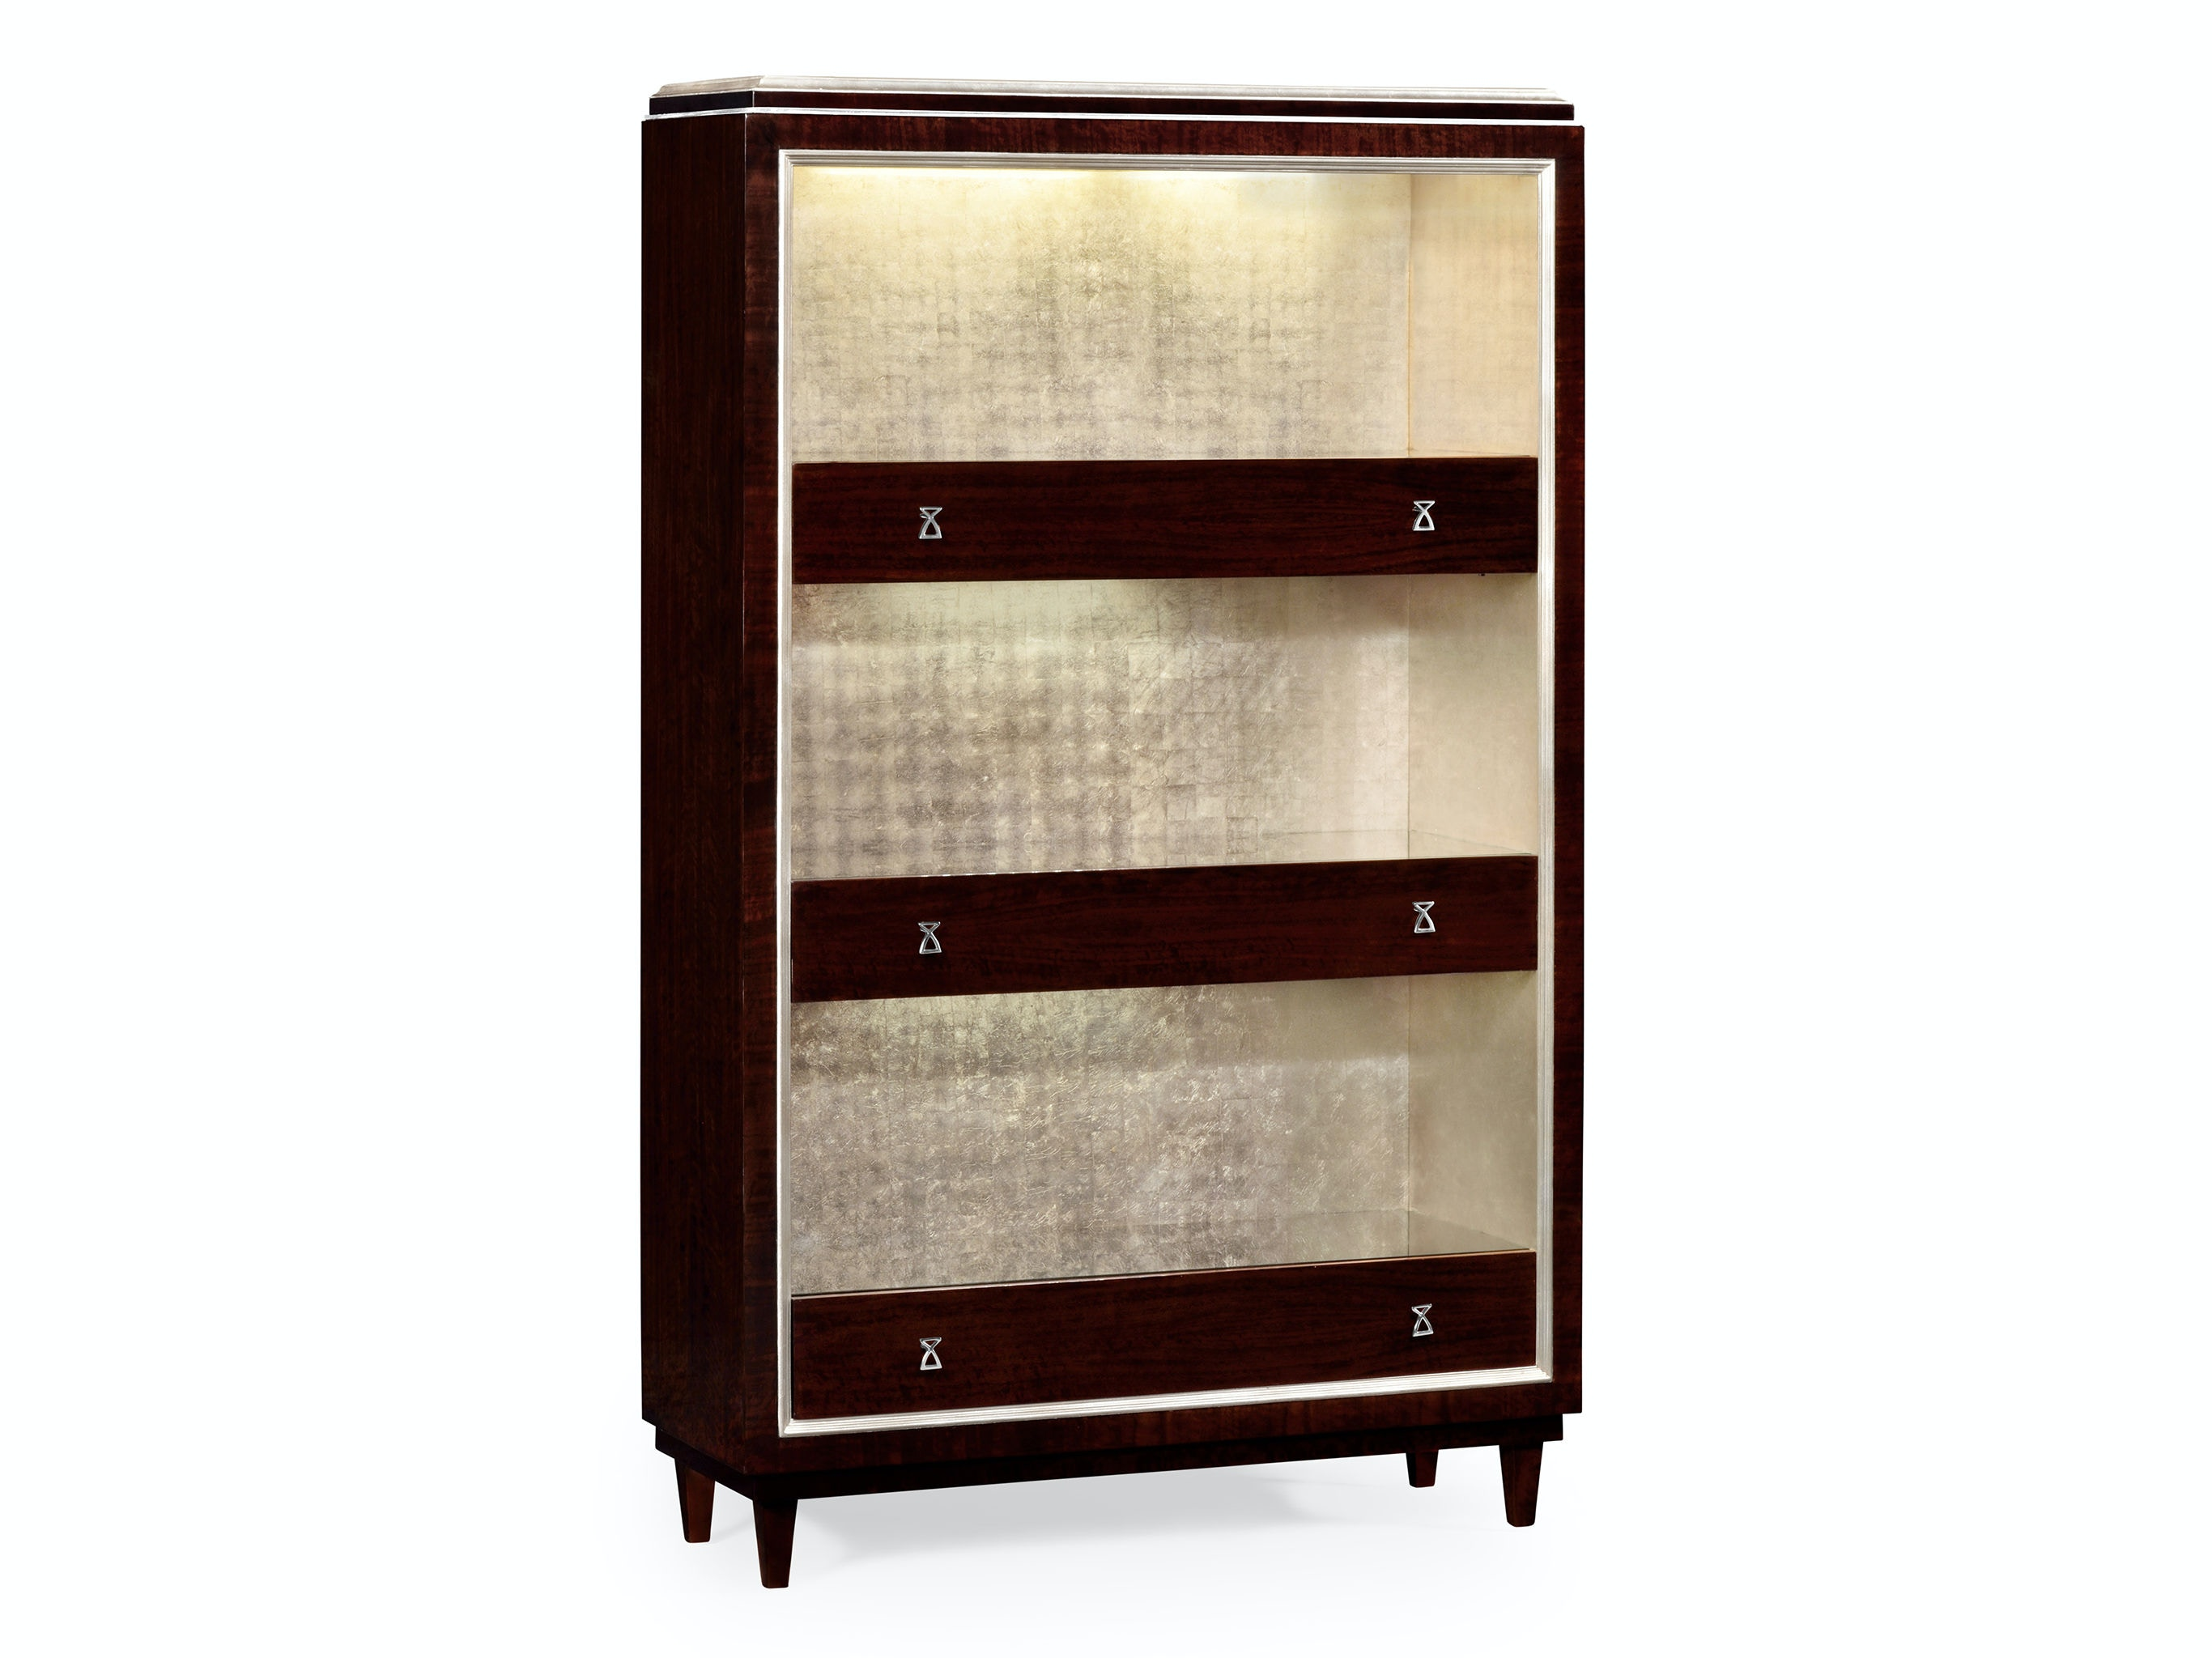 Jonathan Charles Living Room Three Shelf Bookcase With Stainless Steel Detailing Qj495548bec Walter E Smithe Furniture Design